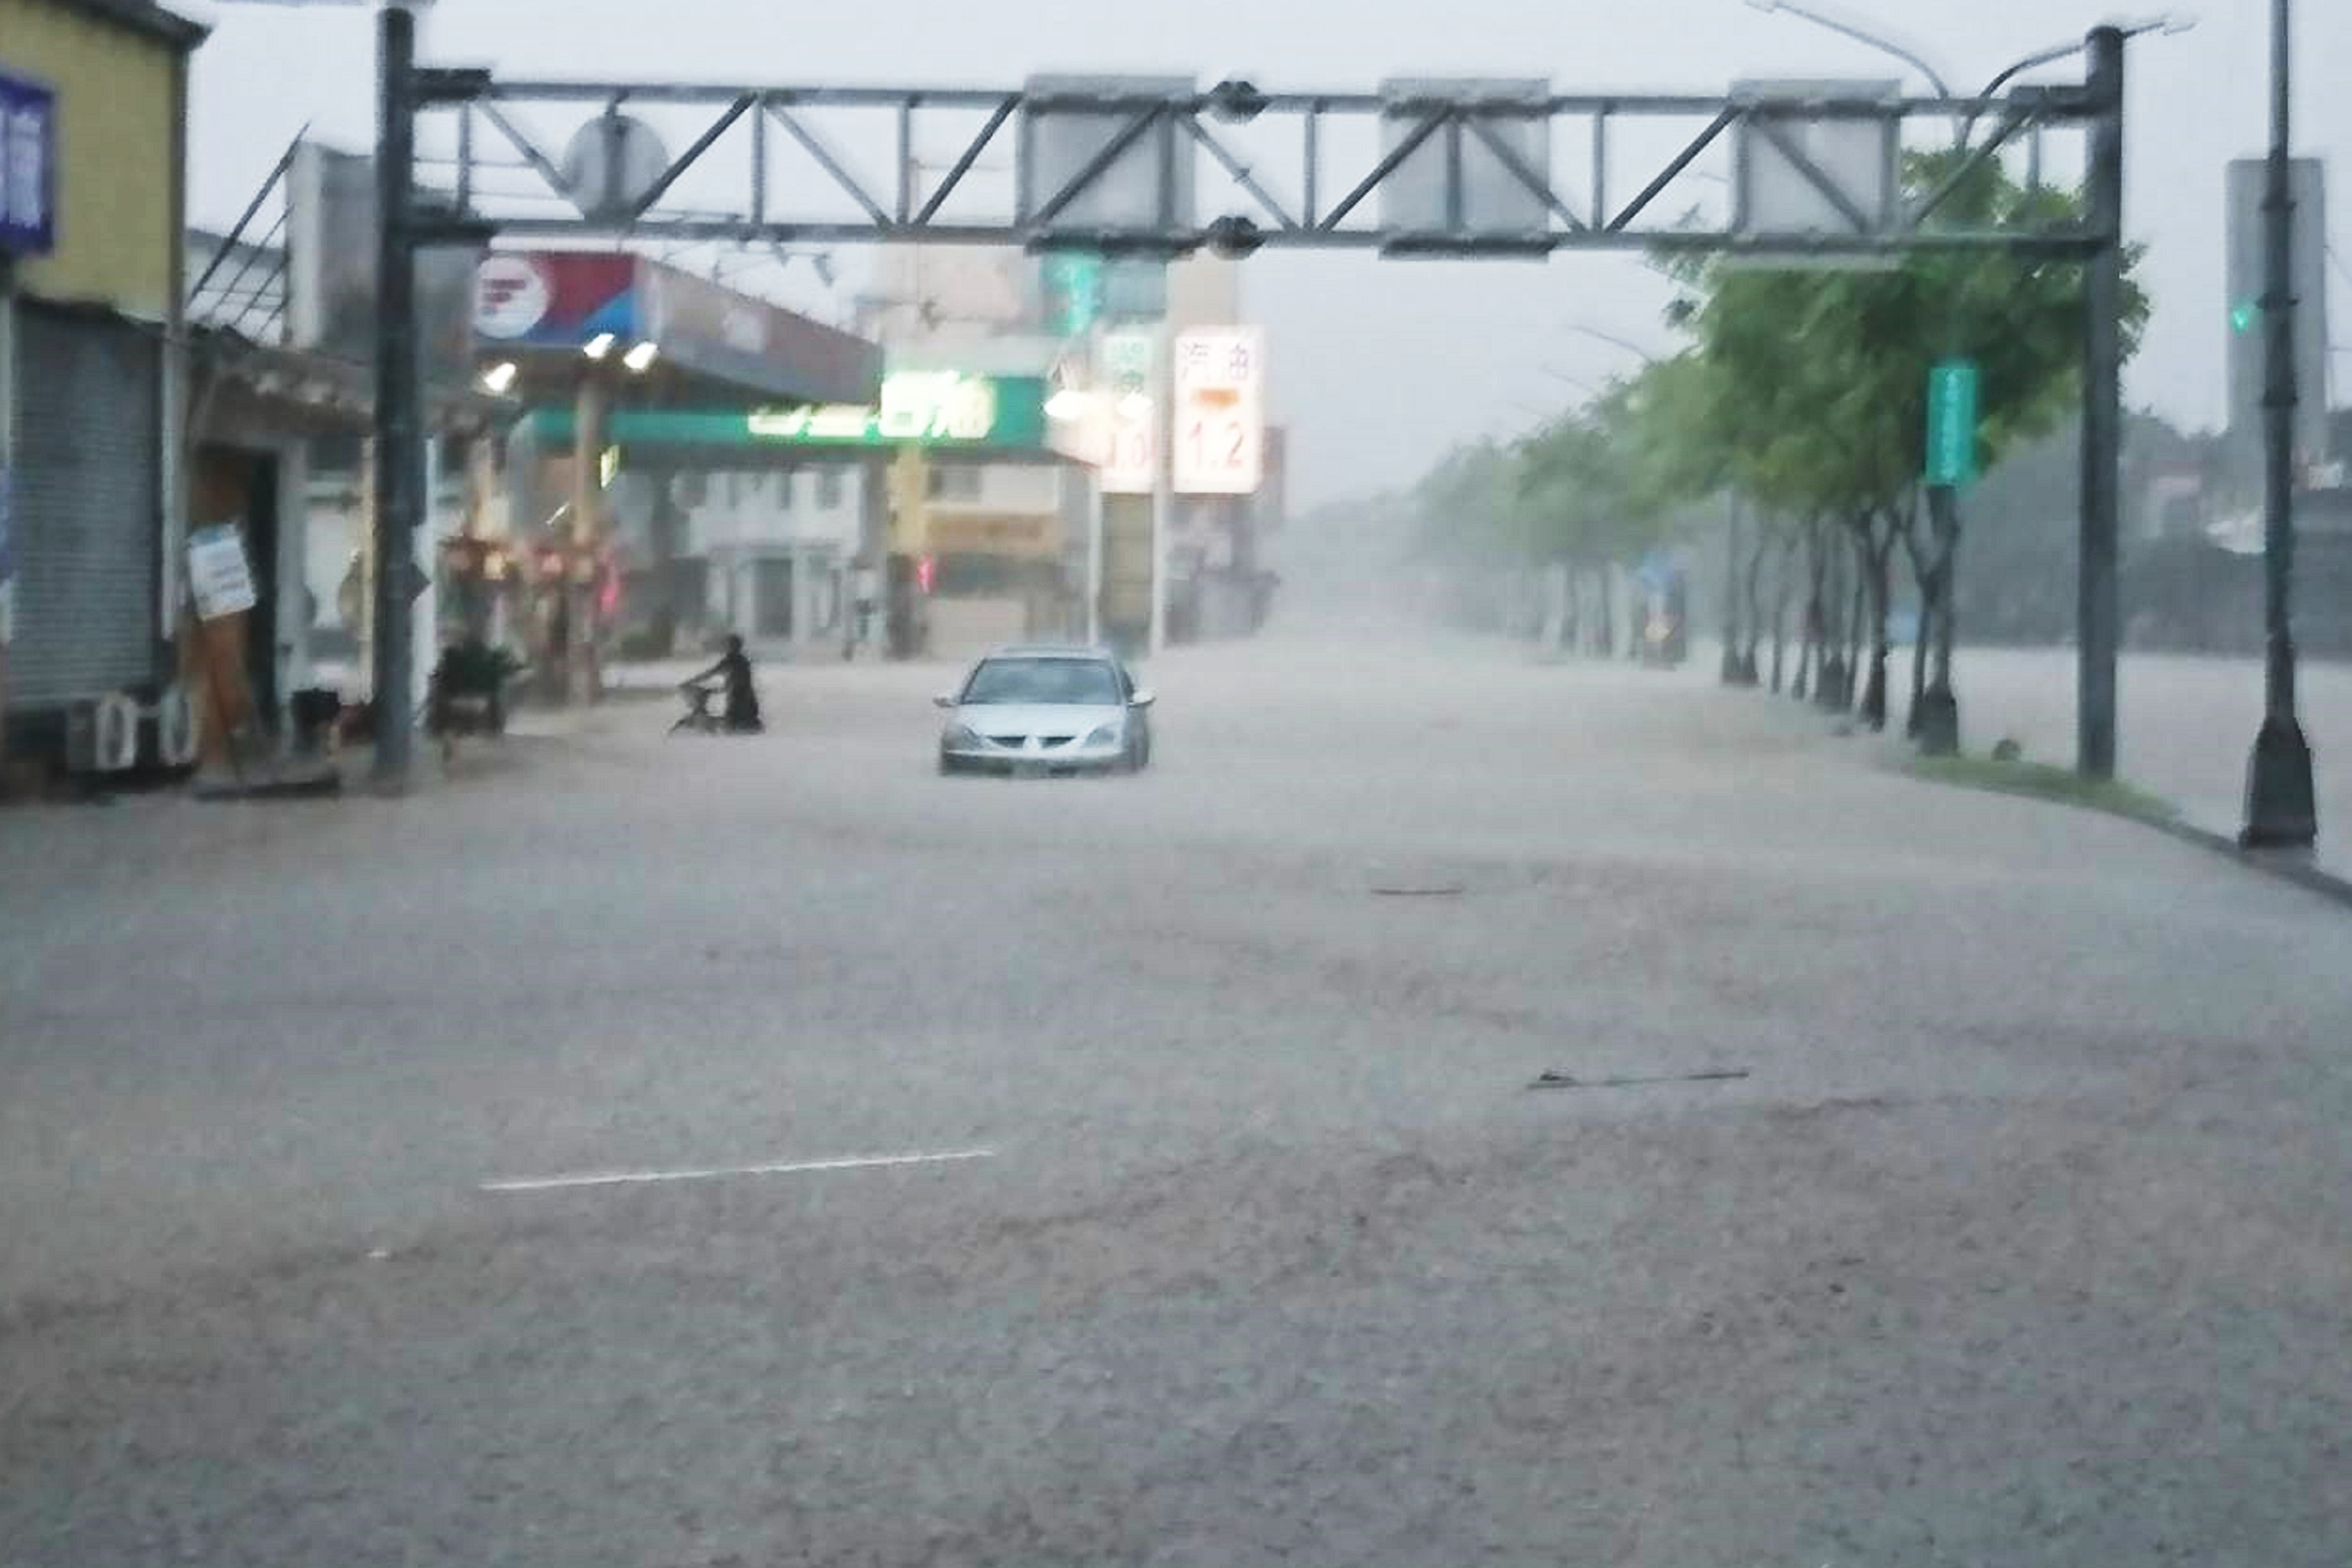 Haitang, second typhoon to hit Taiwan in 24 hours, already in China